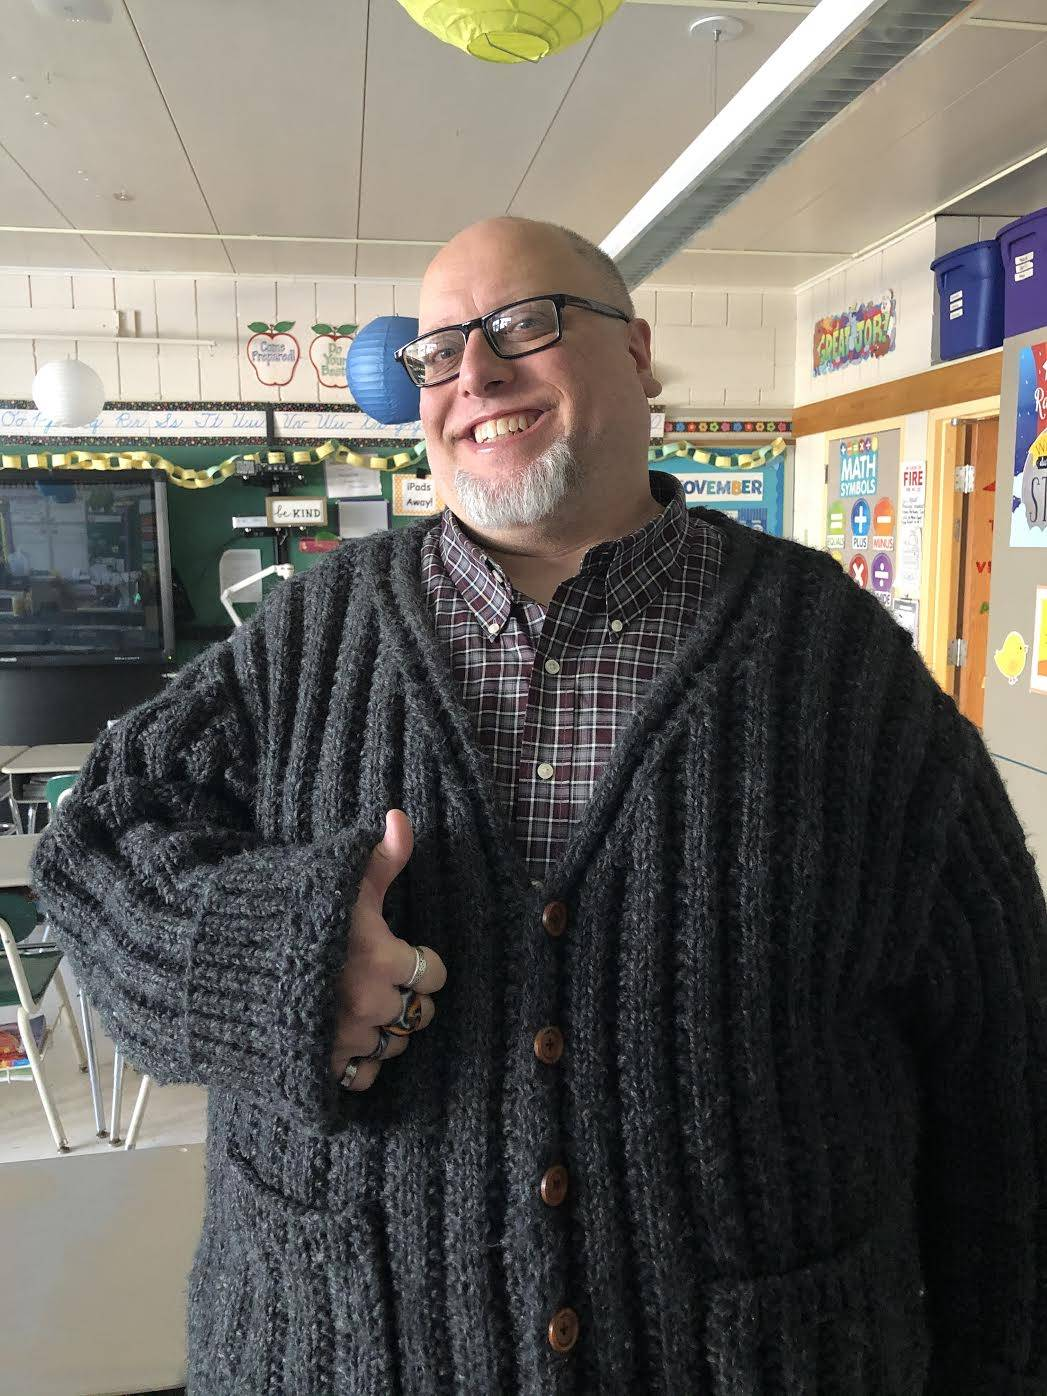 Cardigans & Kindness Day